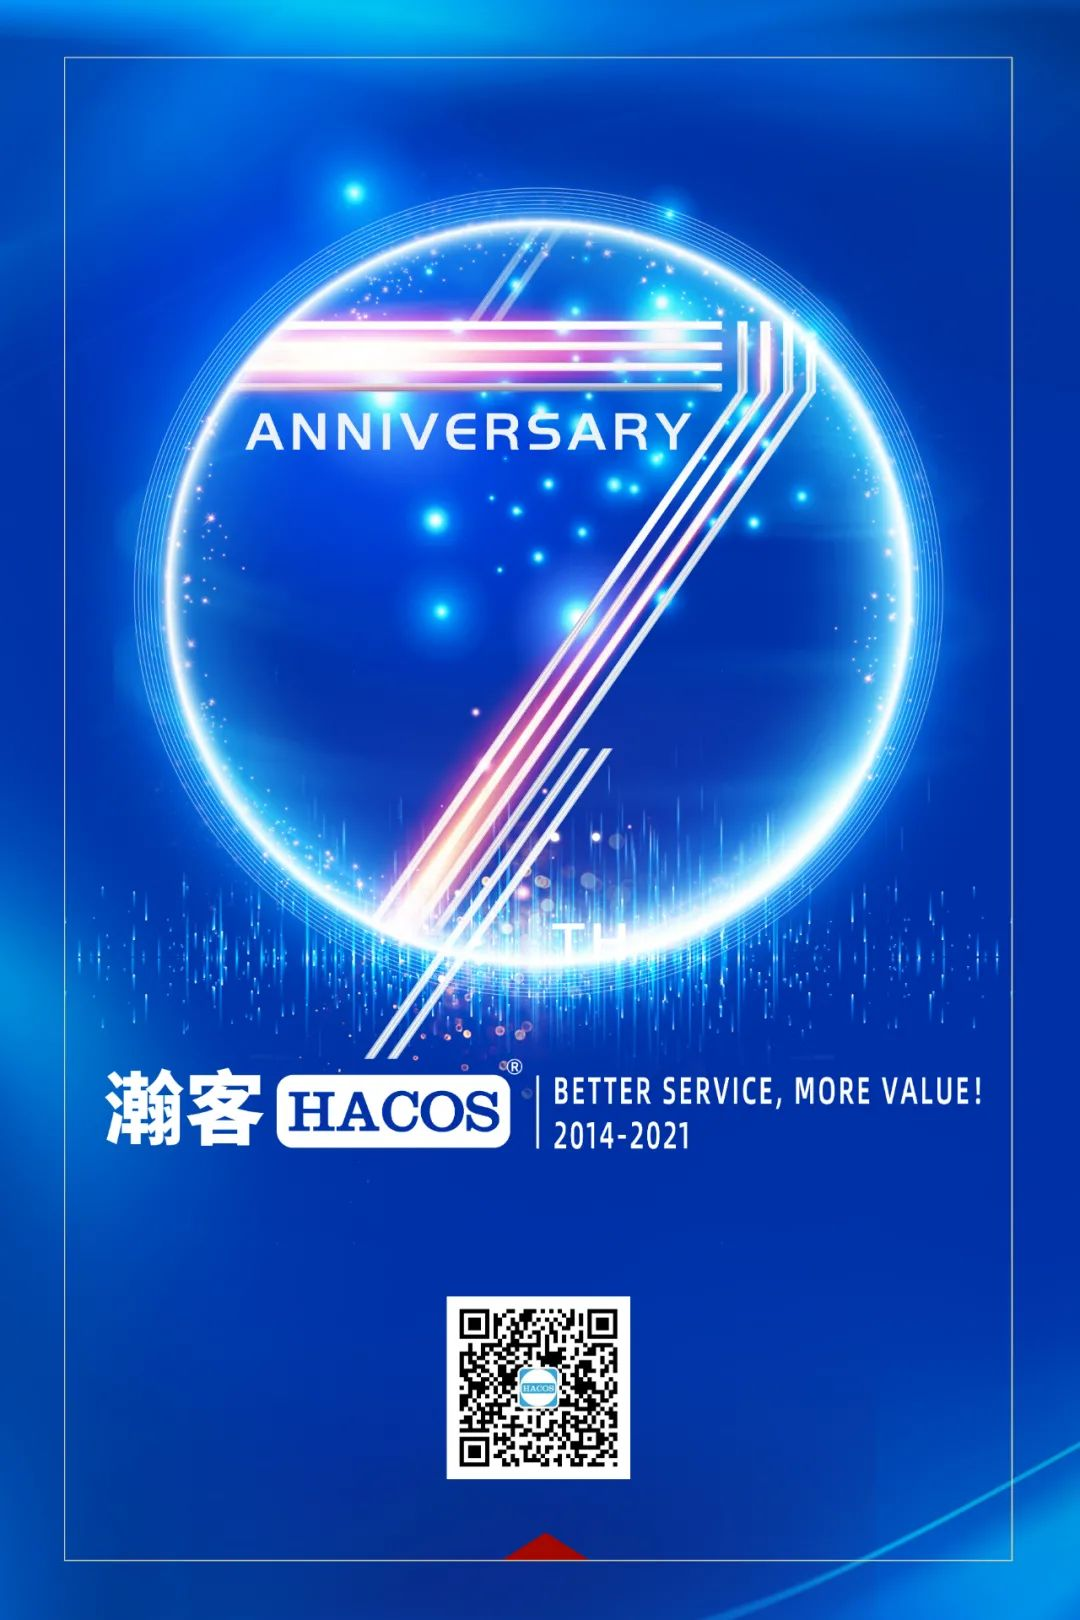 Happy Birthday to HACOS! It's Our 7th Anniversary Today!